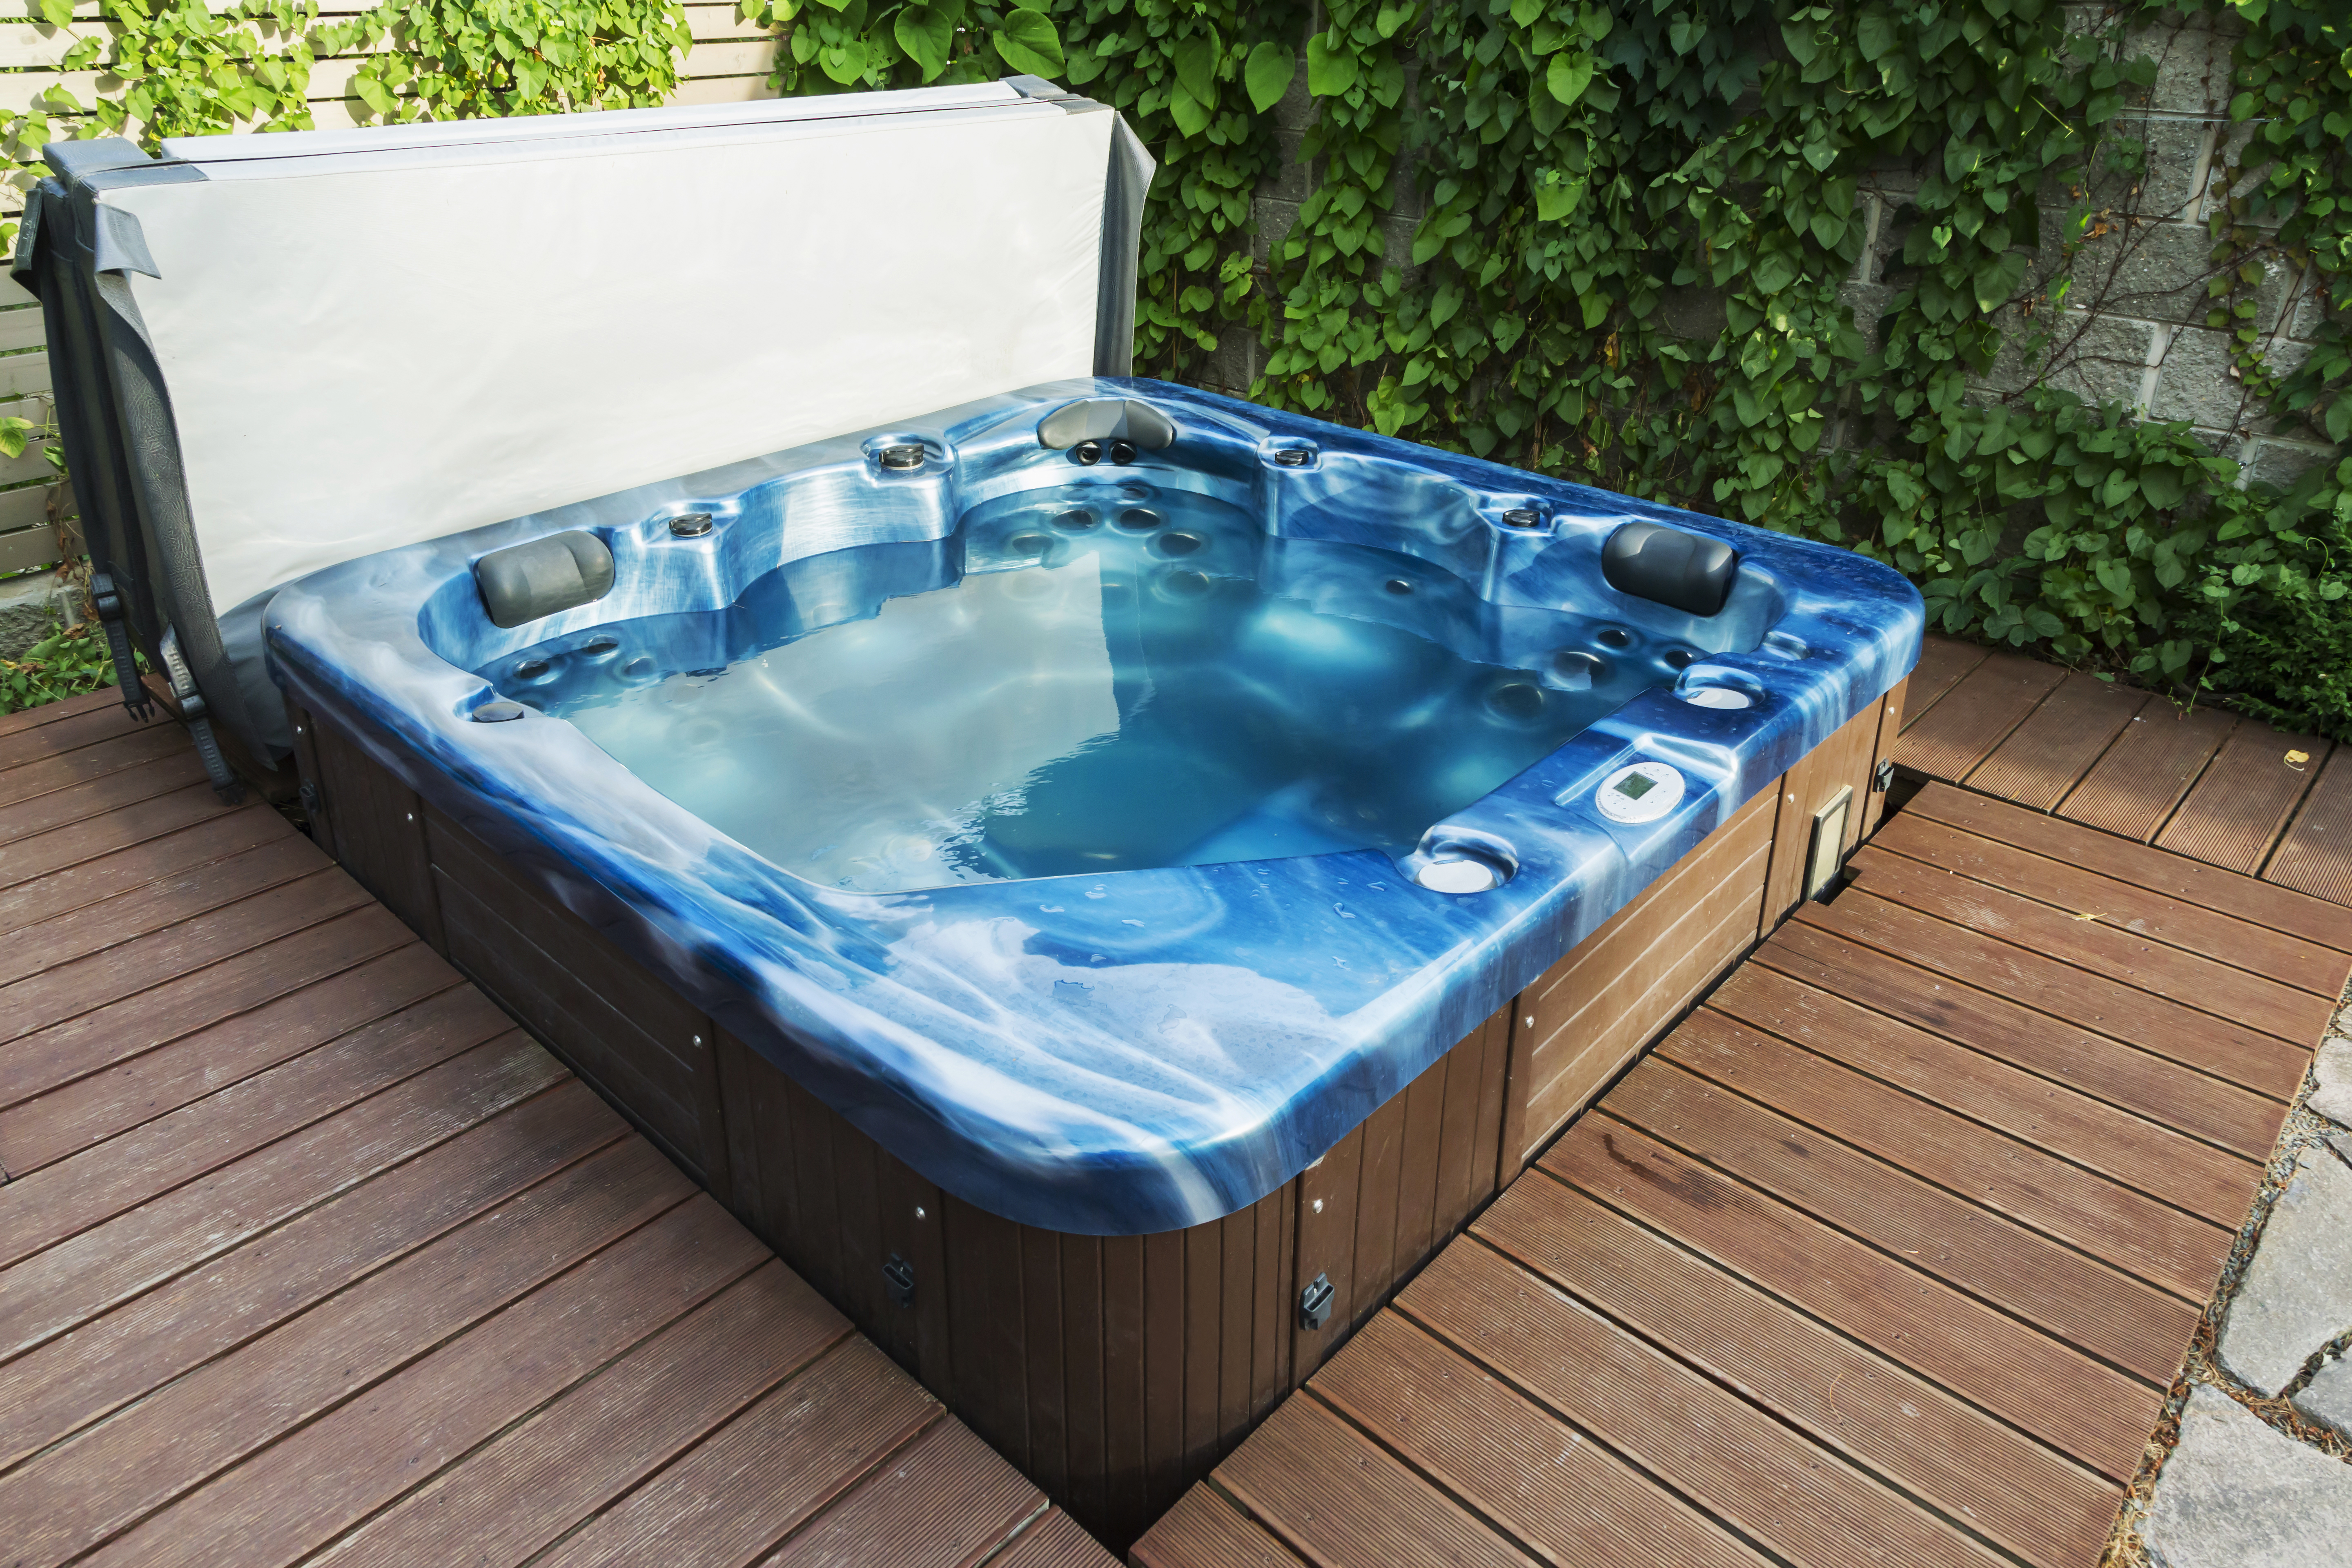 5 Easy Ways to Refresh Your Hot Tub This Year